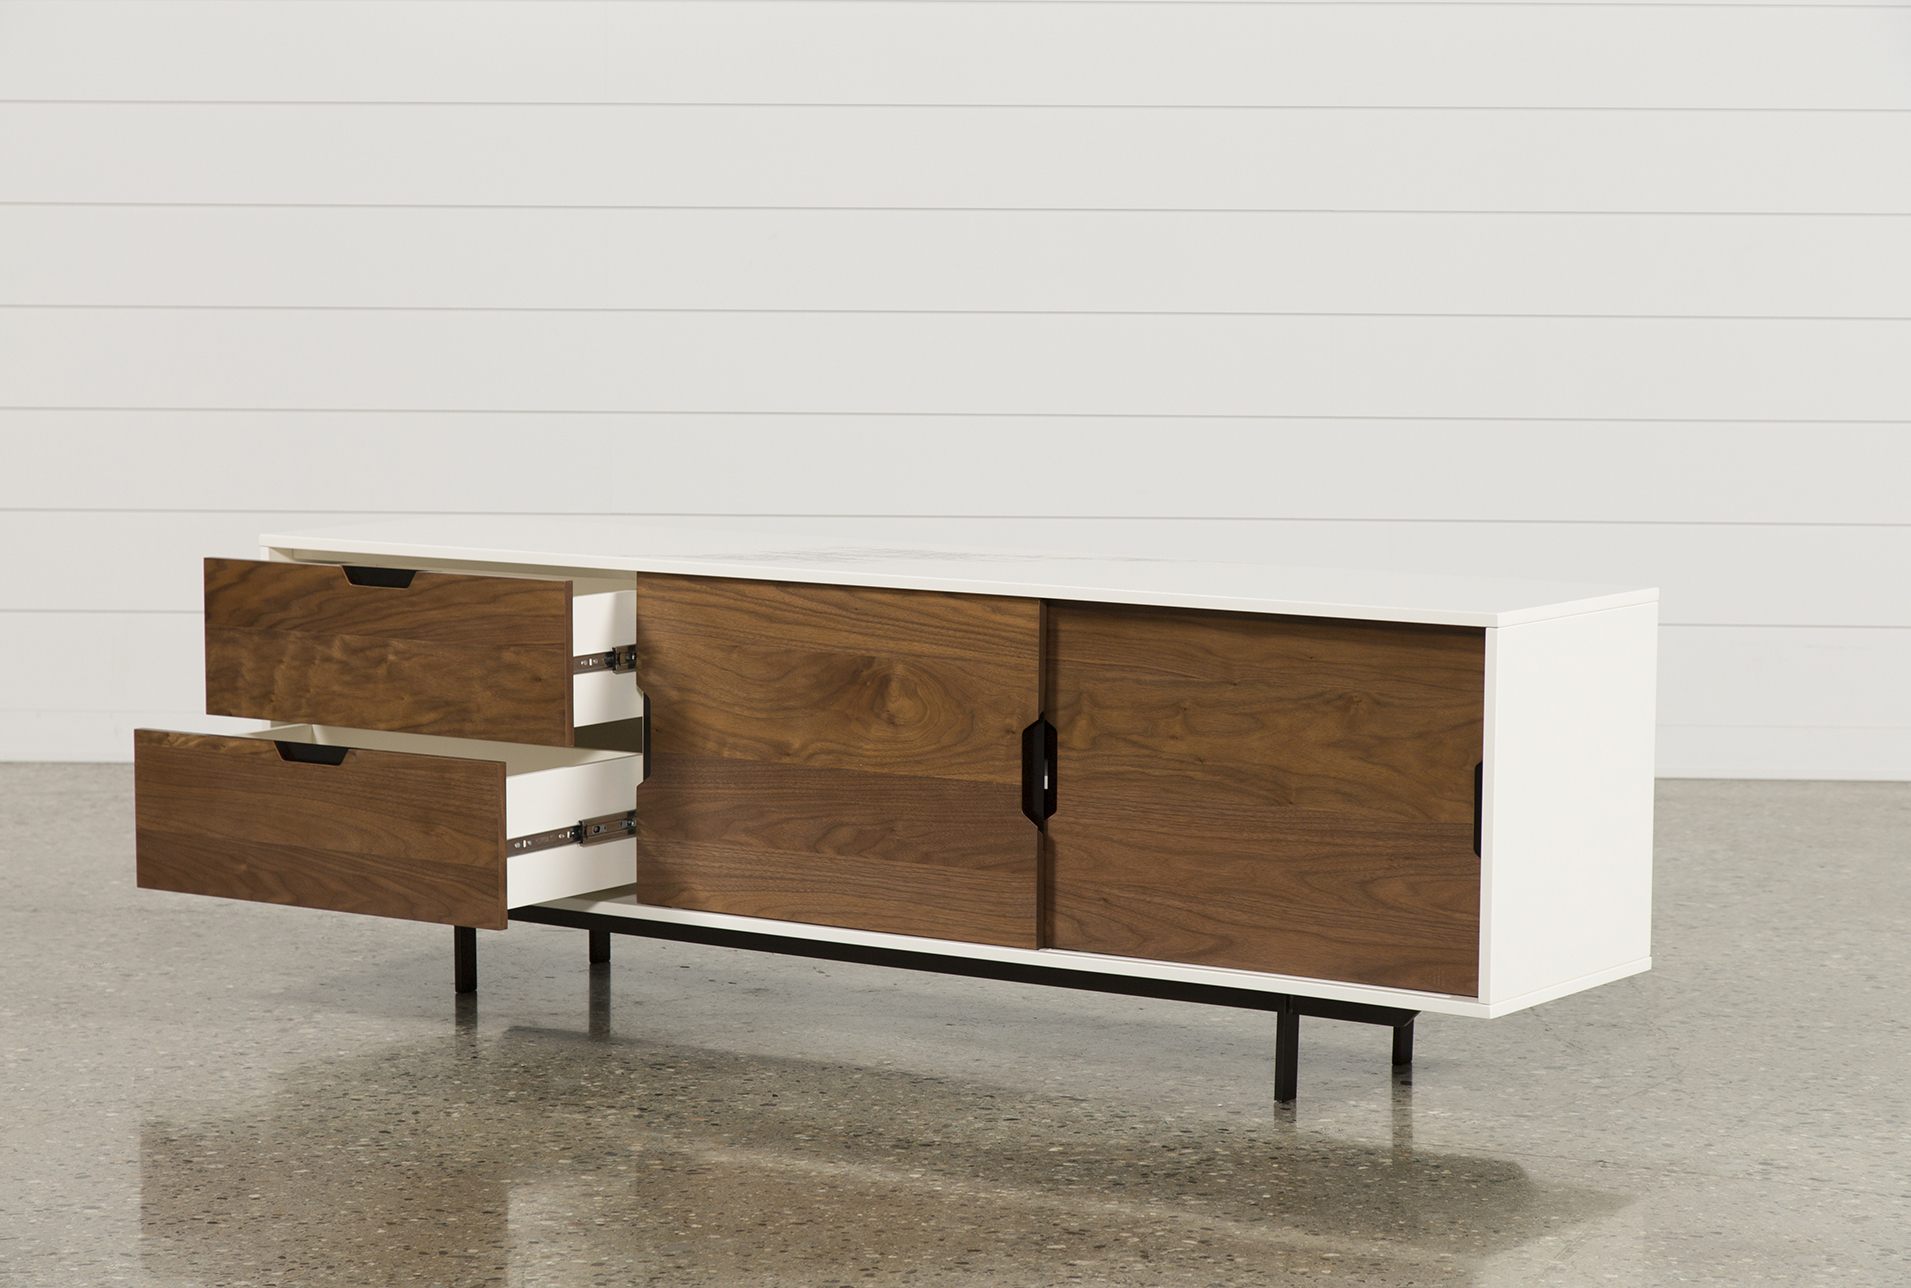 Walton Grey 72 Inch Tv Stand | Andretta Residence | Pinterest Throughout Walton Grey 72 Inch Tv Stands (View 15 of 20)